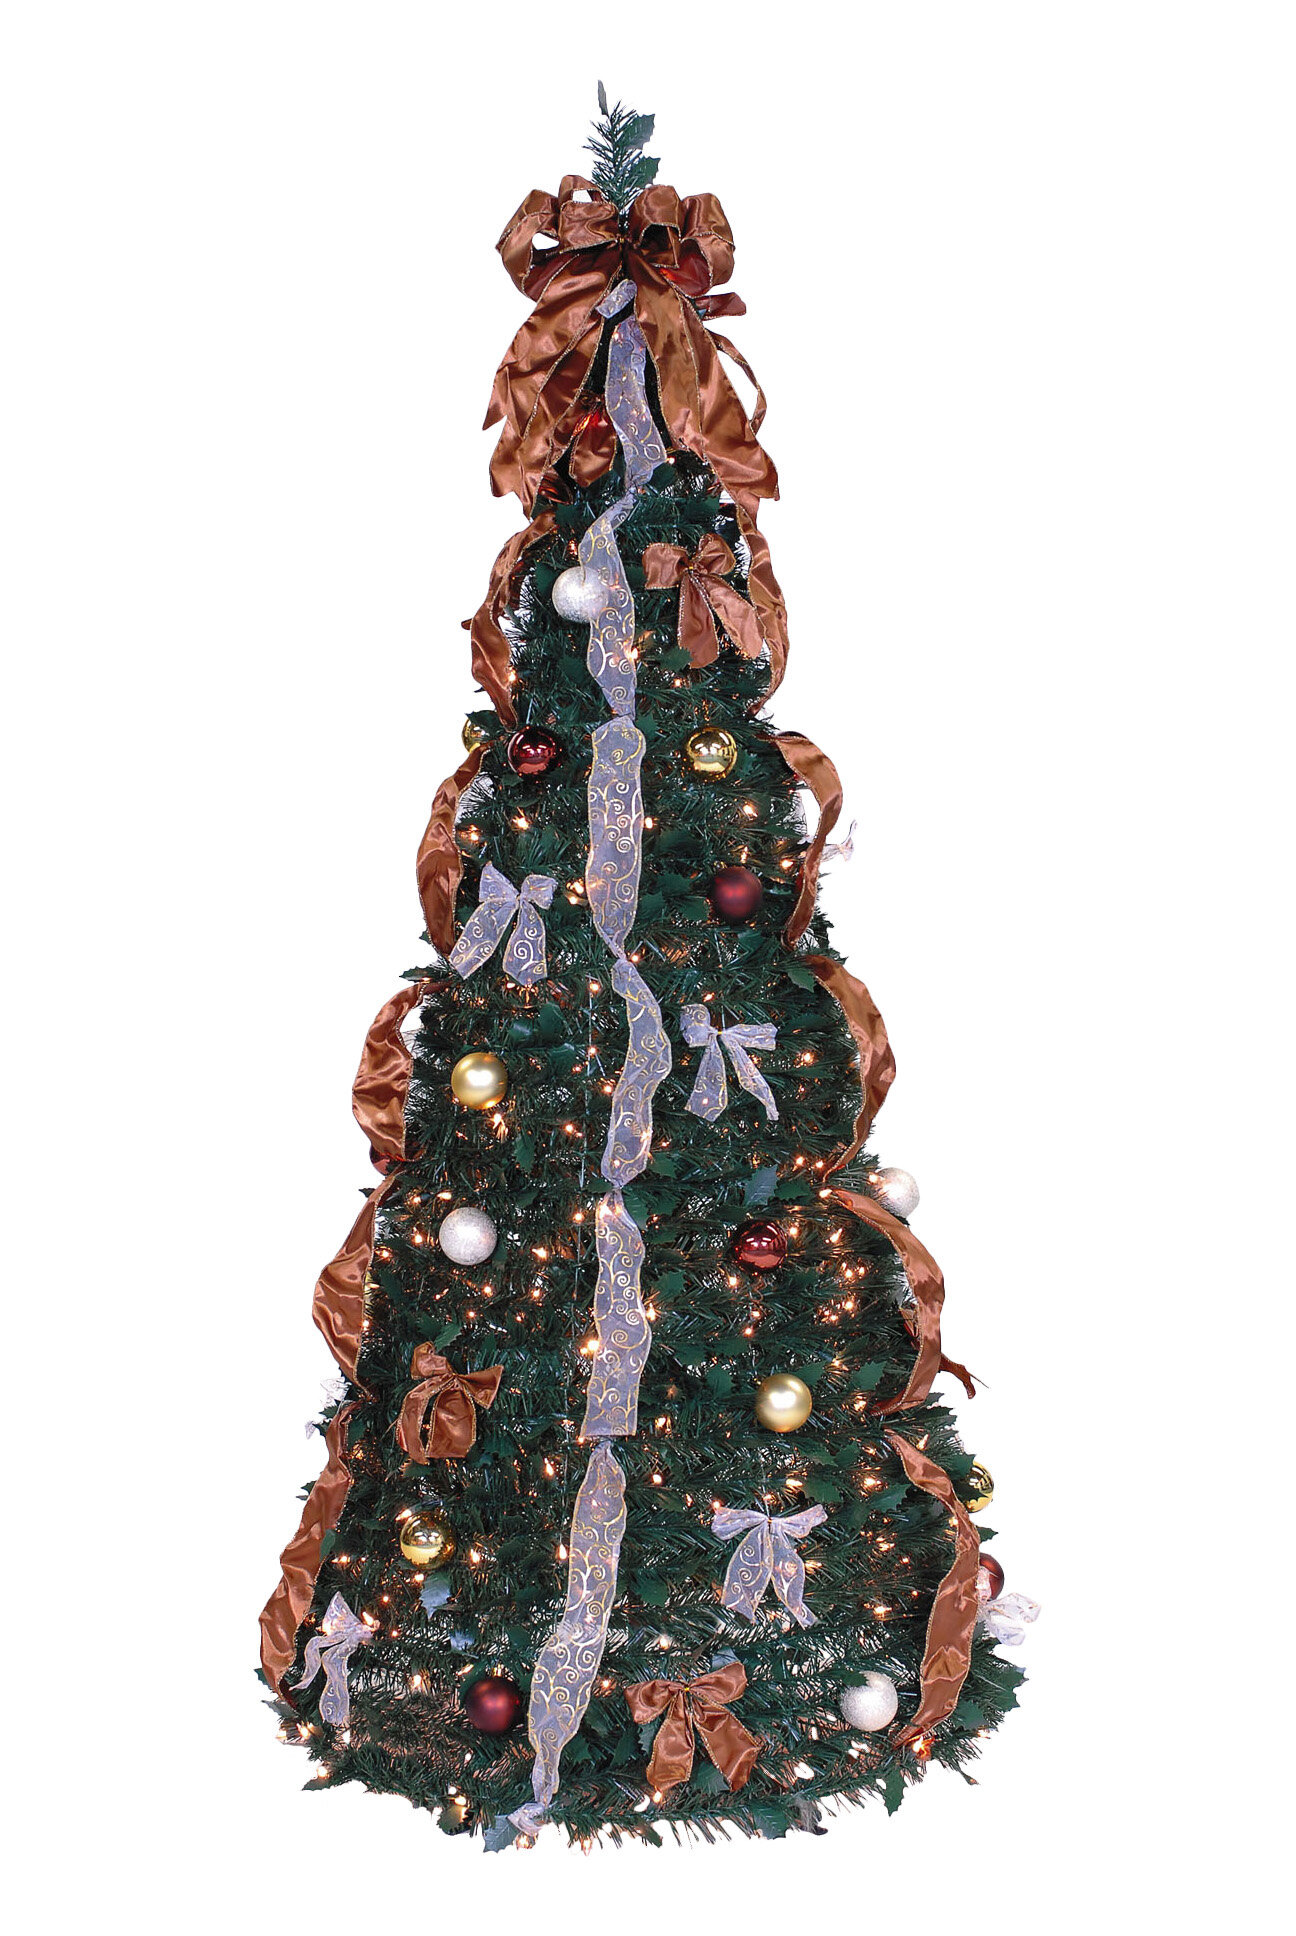 Christmas Tree With Lights.Pop Up 6 Green Pine Artificial Christmas Tree With 350 Clear Lights